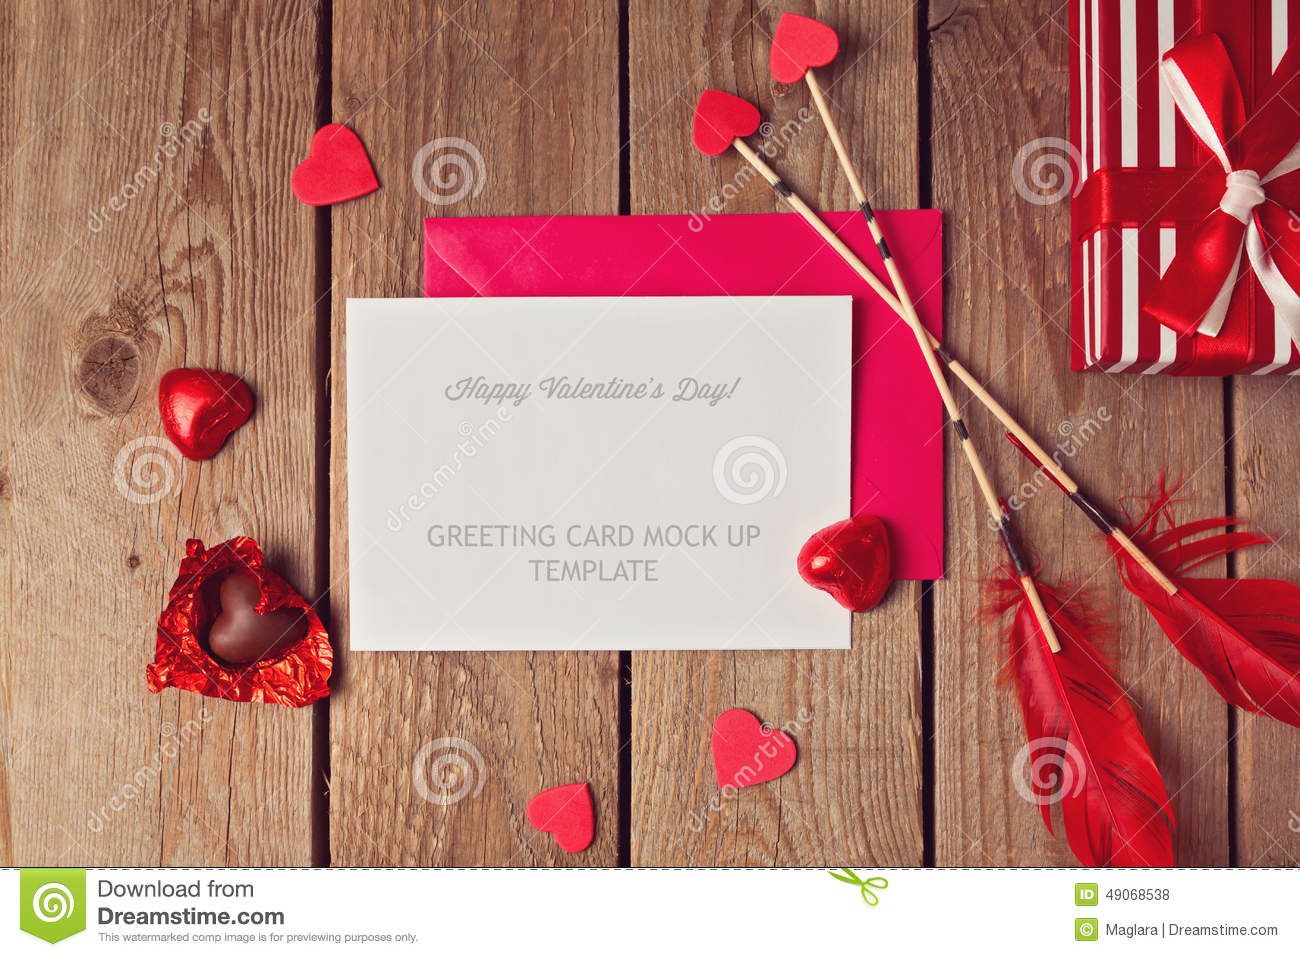 Valentines Day Greeting Card Mock Up Photo Image 49068538 – Images of Valentine Day Greeting Cards